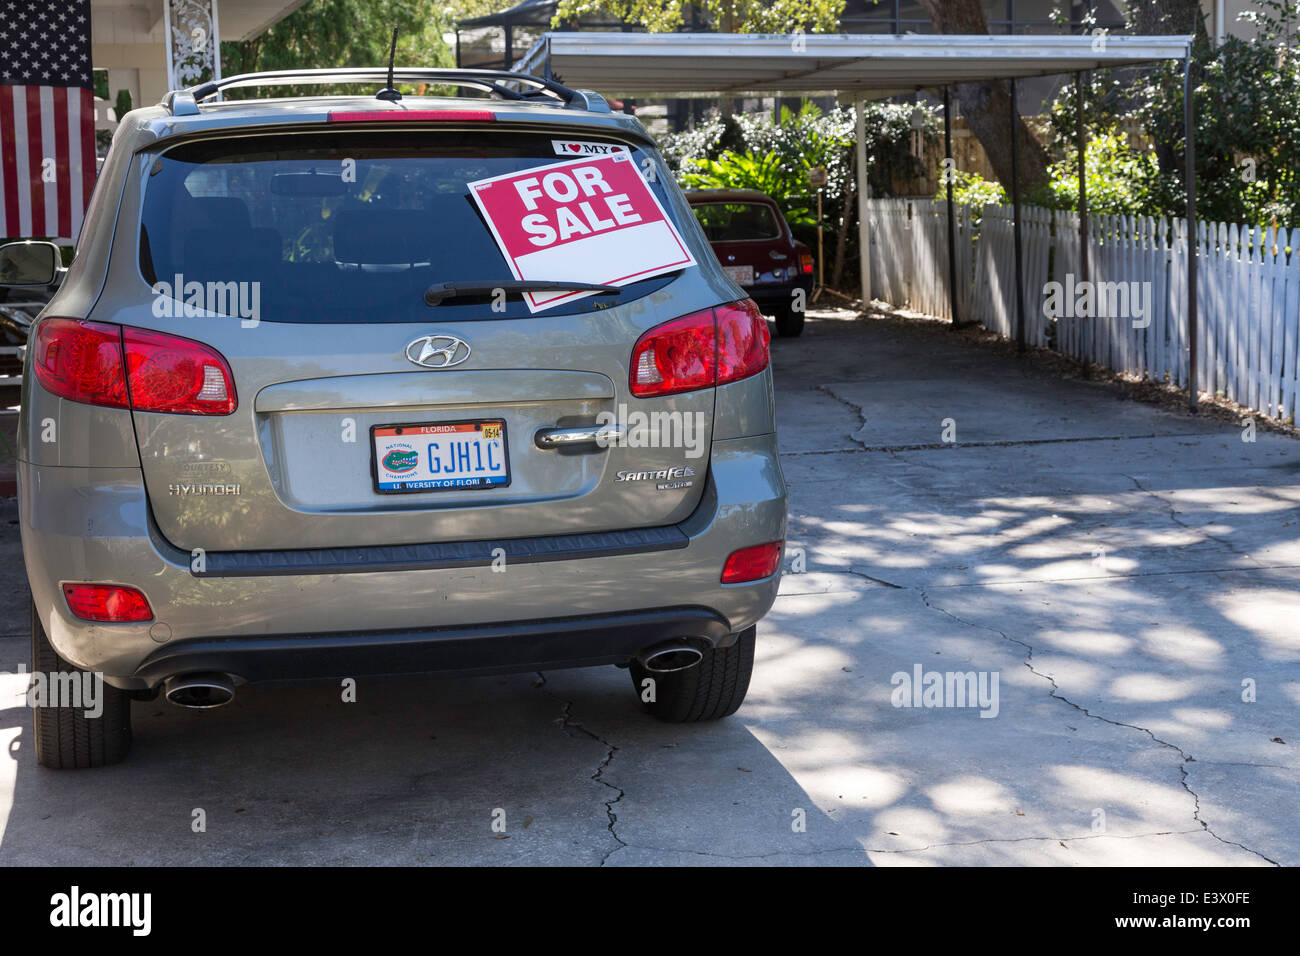 Used Car For Sale By Owner USA Stock Photo Royalty Free Image - Used cars for sale